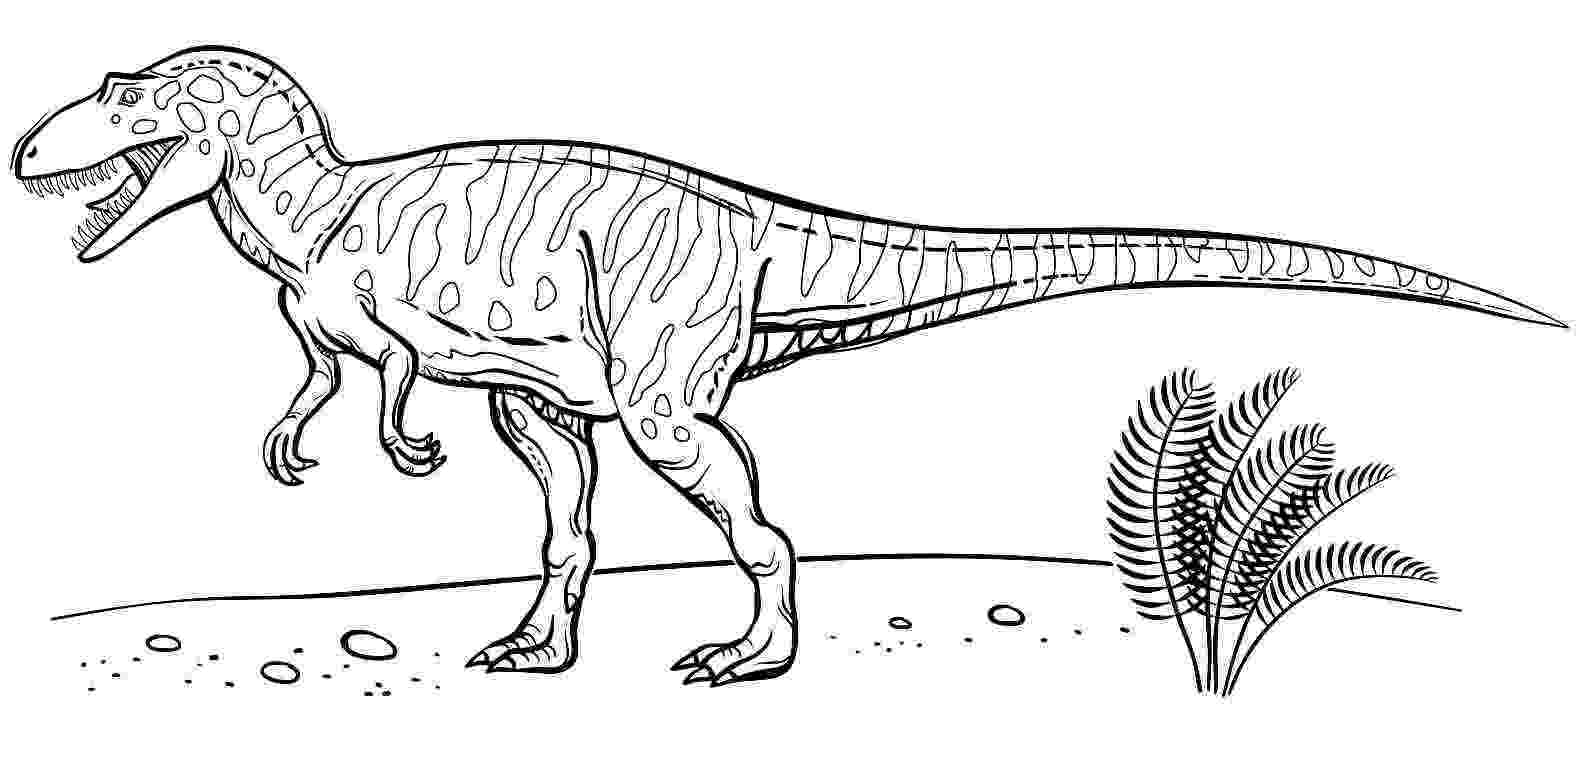 colouring pages velociraptor velociraptor coloring pages best coloring pages for kids velociraptor pages colouring 1 1